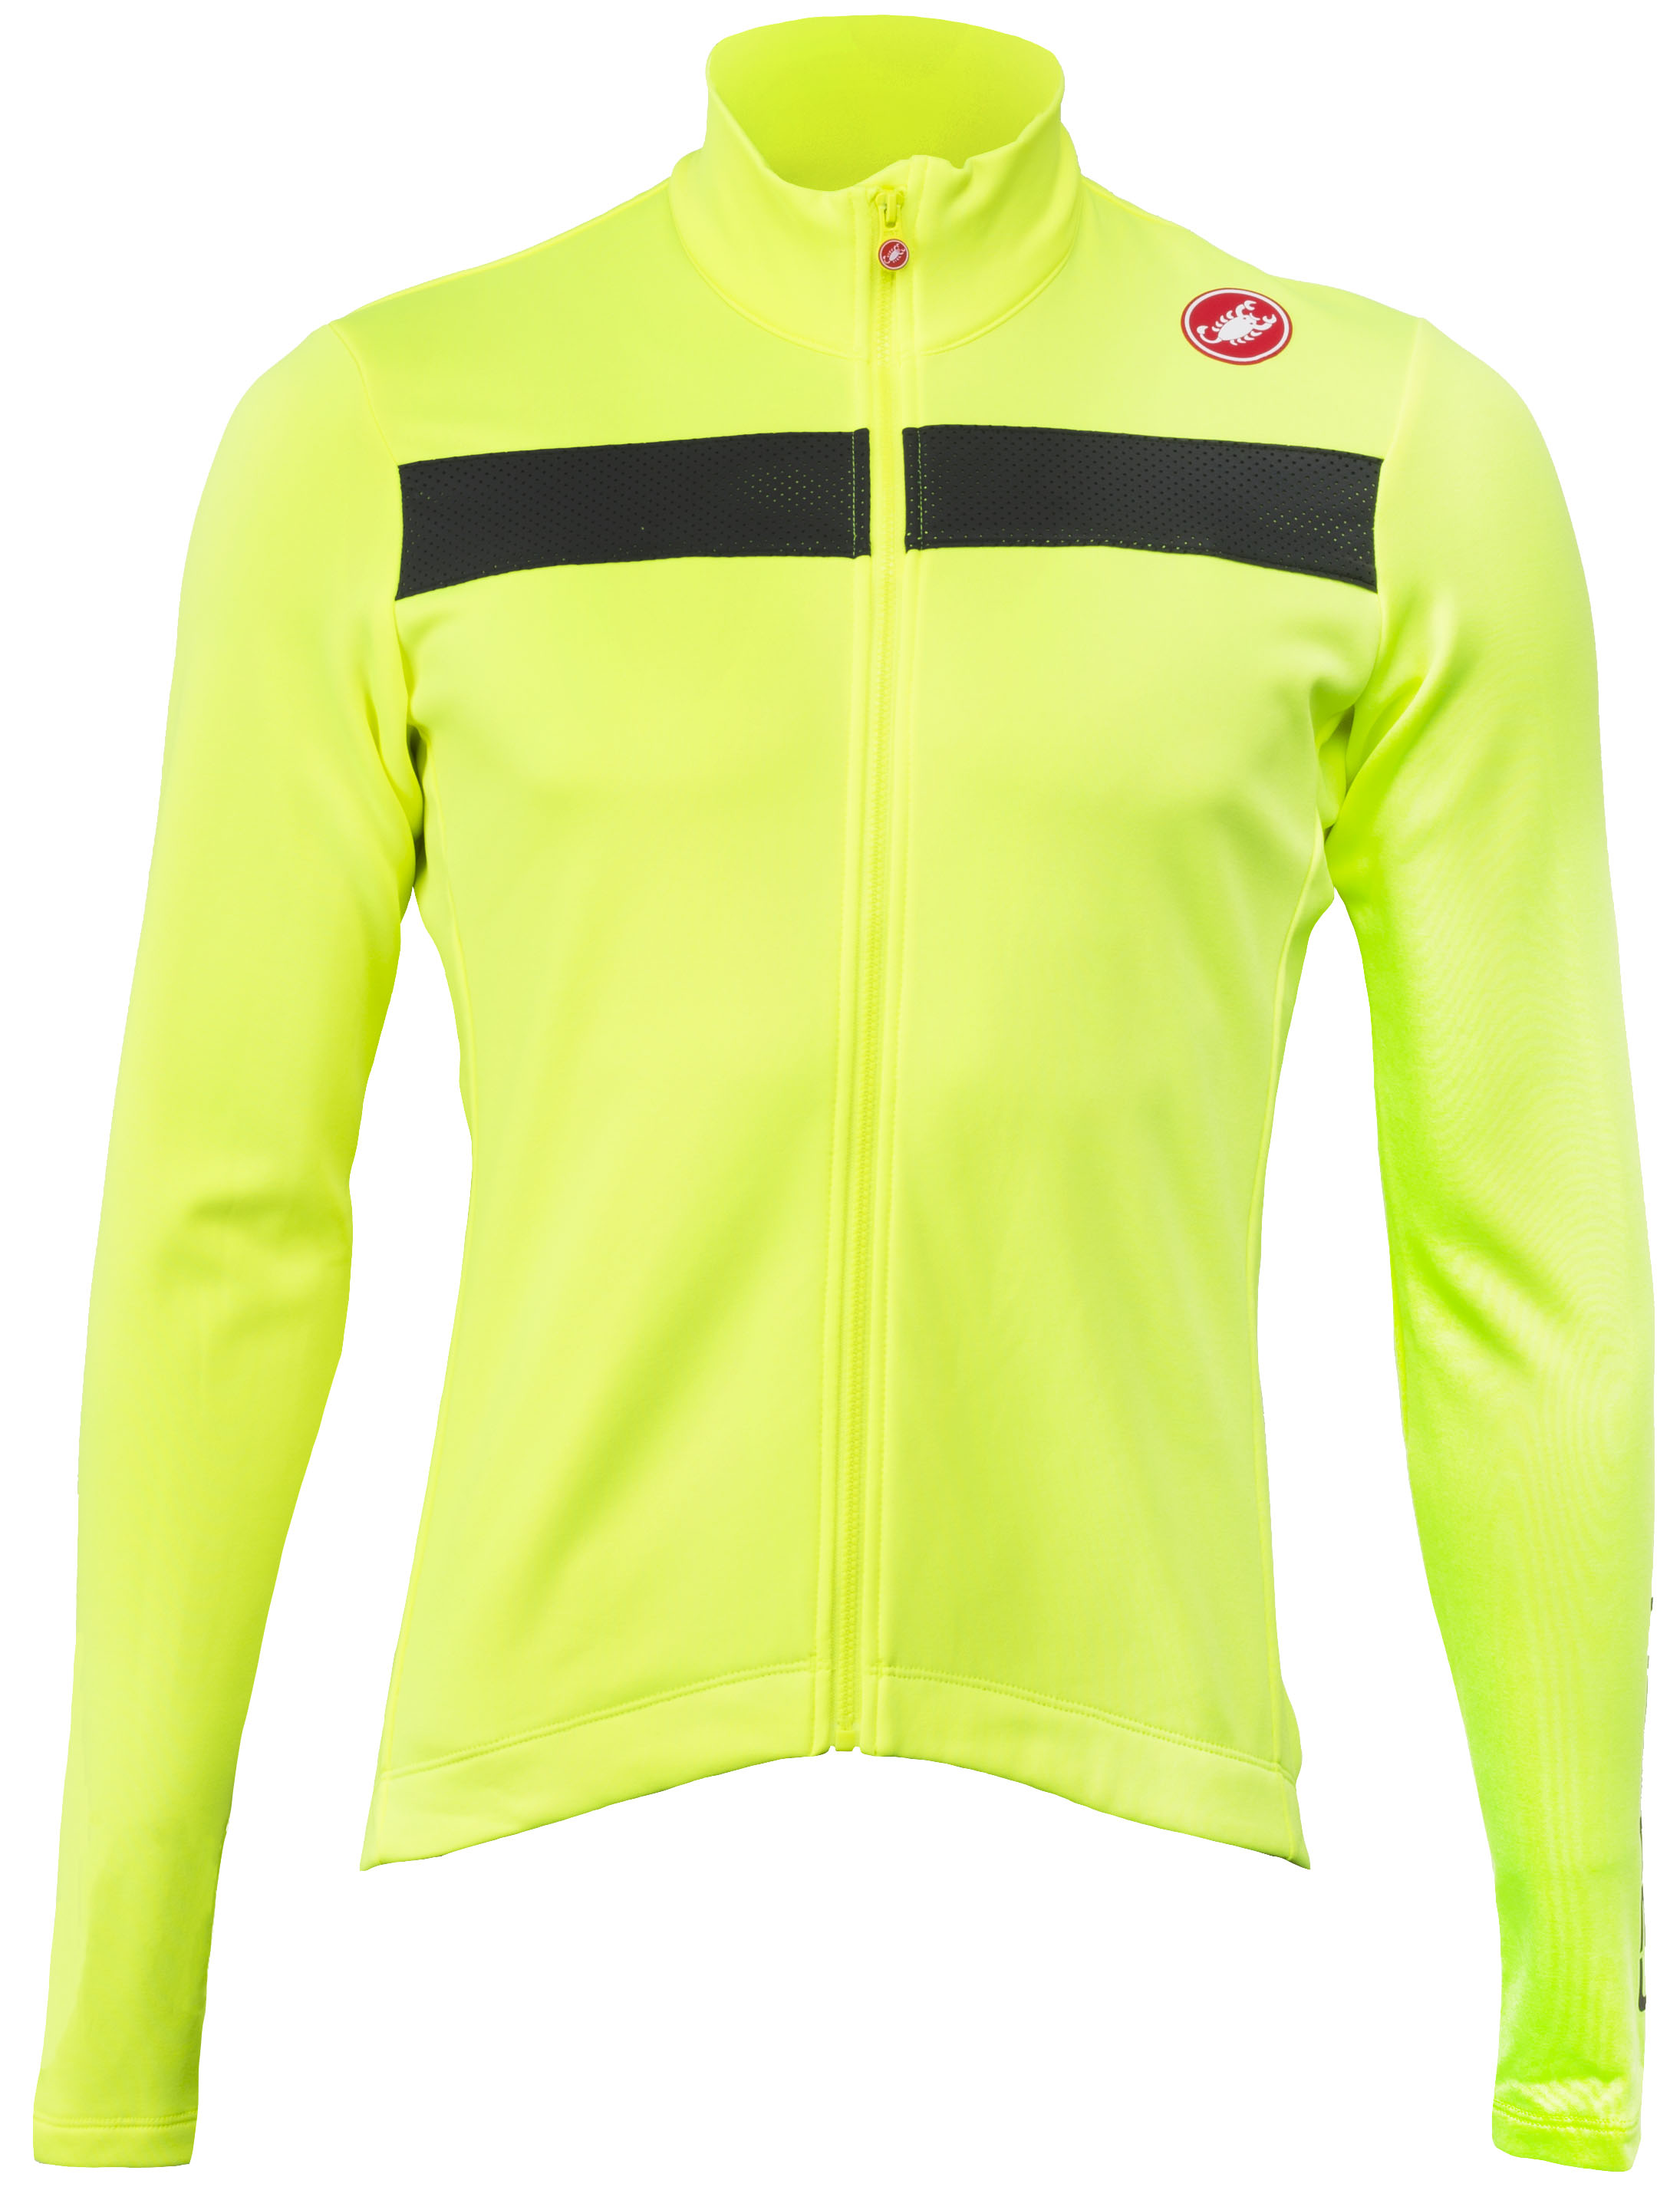 YELLOW FLUO NEW Castelli PURO 3 Long Sleeve Cycling Jersey